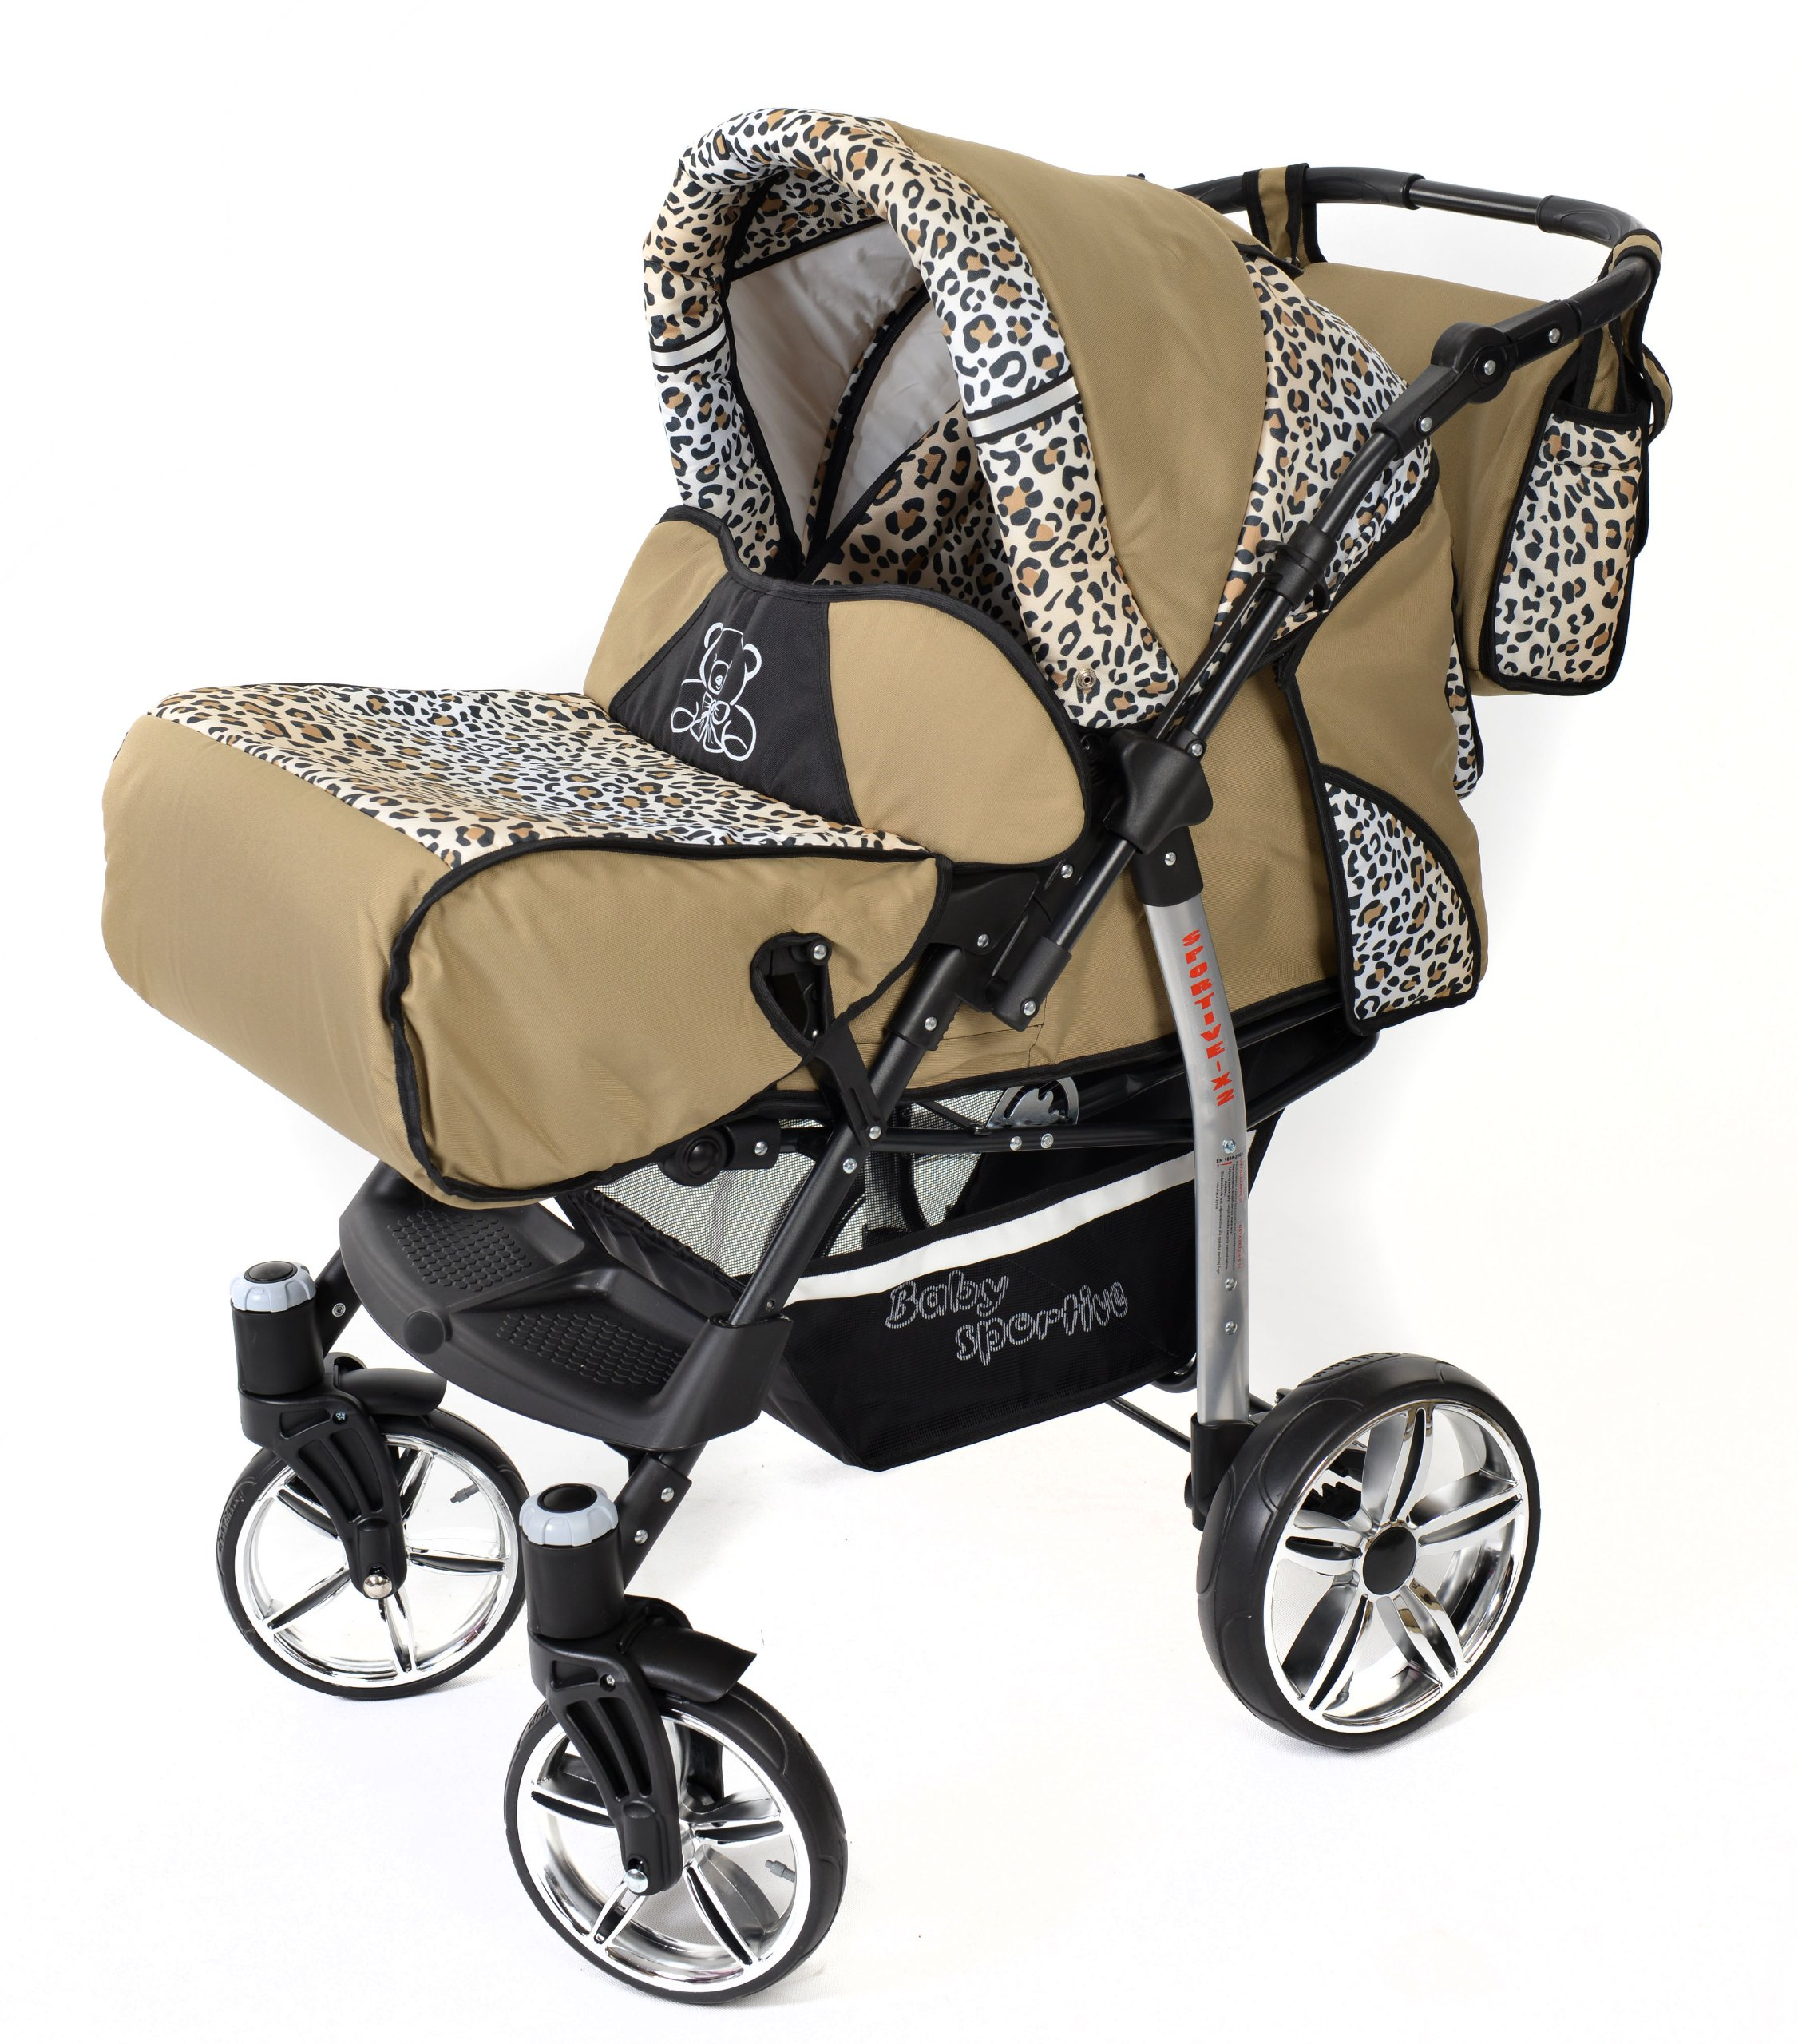 Sportive X2, 3-in-1 Travel System incl. Baby Pram with Swivel Wheels, Car Seat, Pushchair & Accessories (3-in-1 Travel System, Beige & Leopard) Baby Sportive 3 in 1 Travel System All in One Set - Pram, Car Carrier Seat and Sport Buggy + Accessories: carrier bag, rain protection, mosquito net, changing mat, removable bottle holder and removable tray for your child's bits and pieces Suitable from birth, Easy Quick Folding System; Large storage basket; Turnable handle bar that allows to face or rear the drive direction; Quick release rear wheels for easy cleaning after muddy walks Front lockable 360o swivel wheels for manoeuvrability , Small sized when folded, fits into many small car trunks, Carry-cot with a removable hood, Reflective elements for better visibility 3